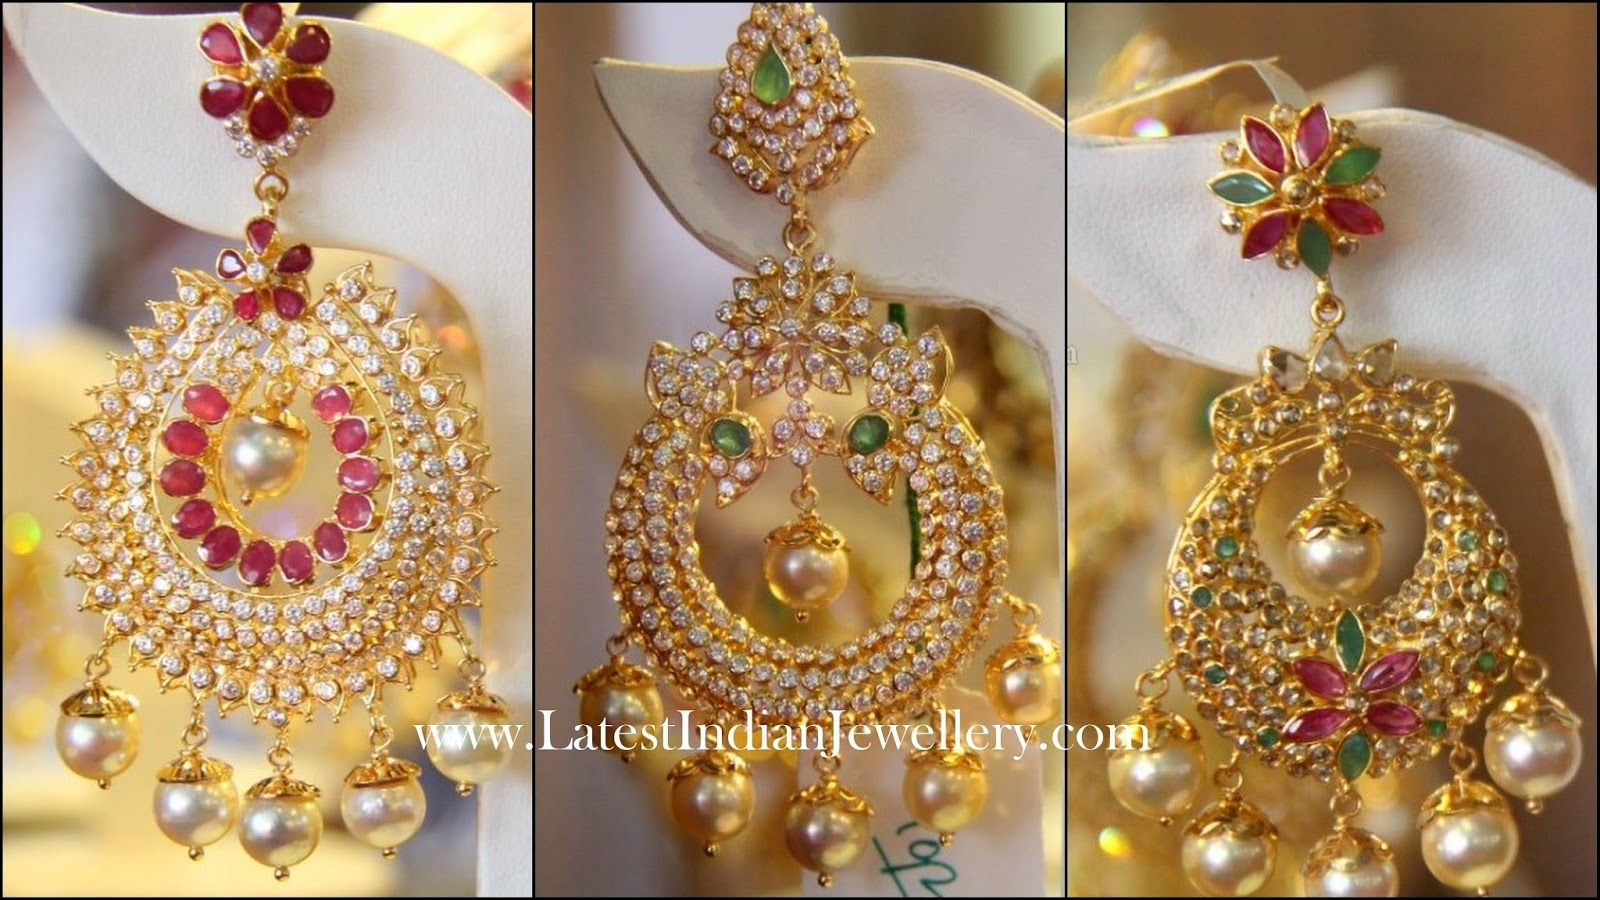 Latest Designer Heavy Chand Bali Earrings | Designers, Indian ...